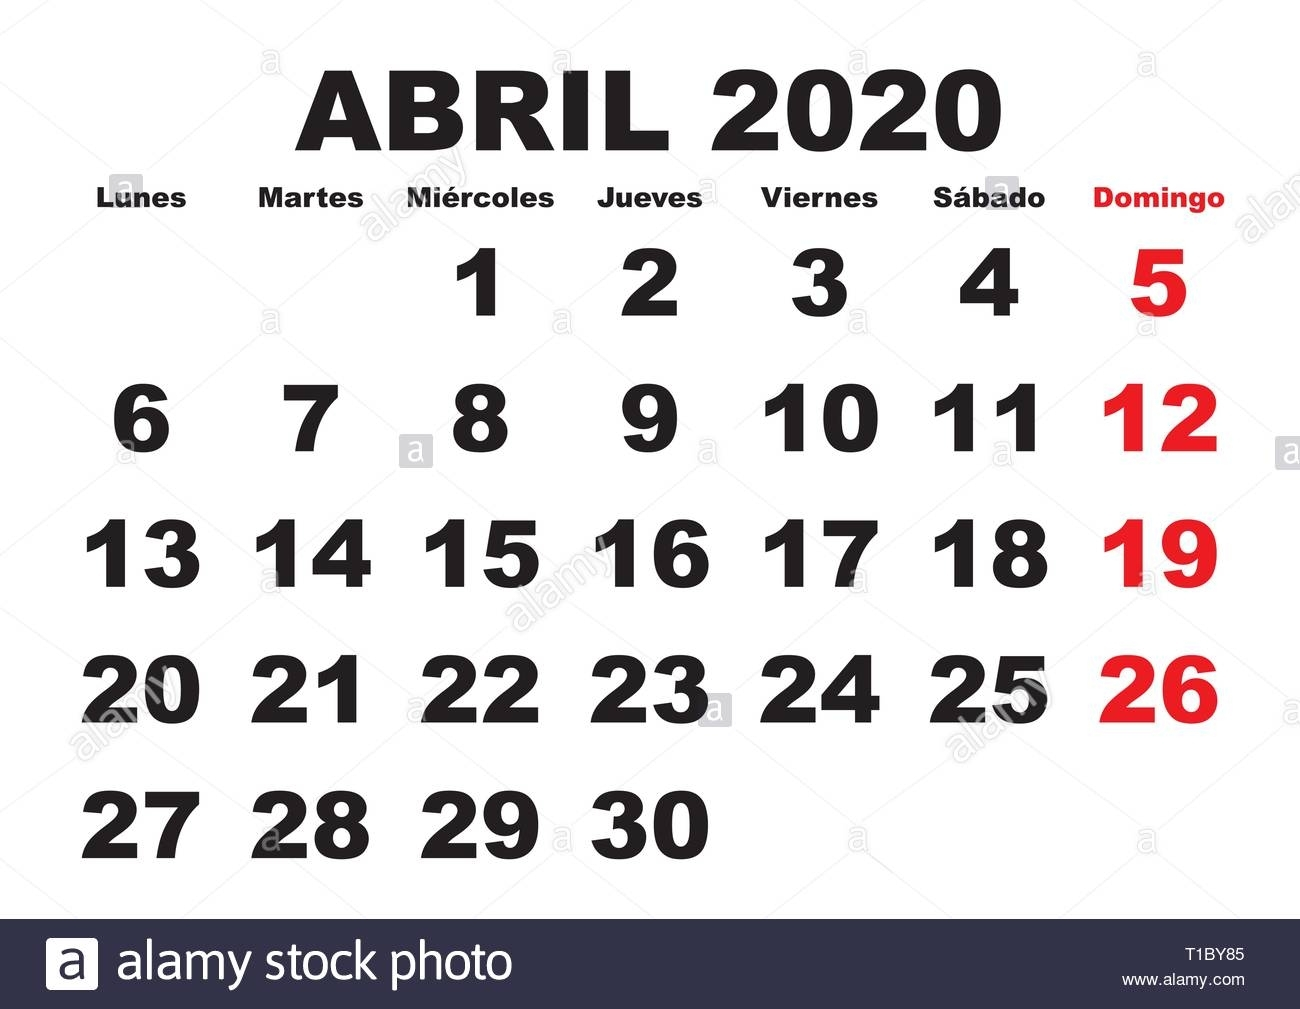 April Month In A Year 2020 Wall Calendar In Spanish. Abril